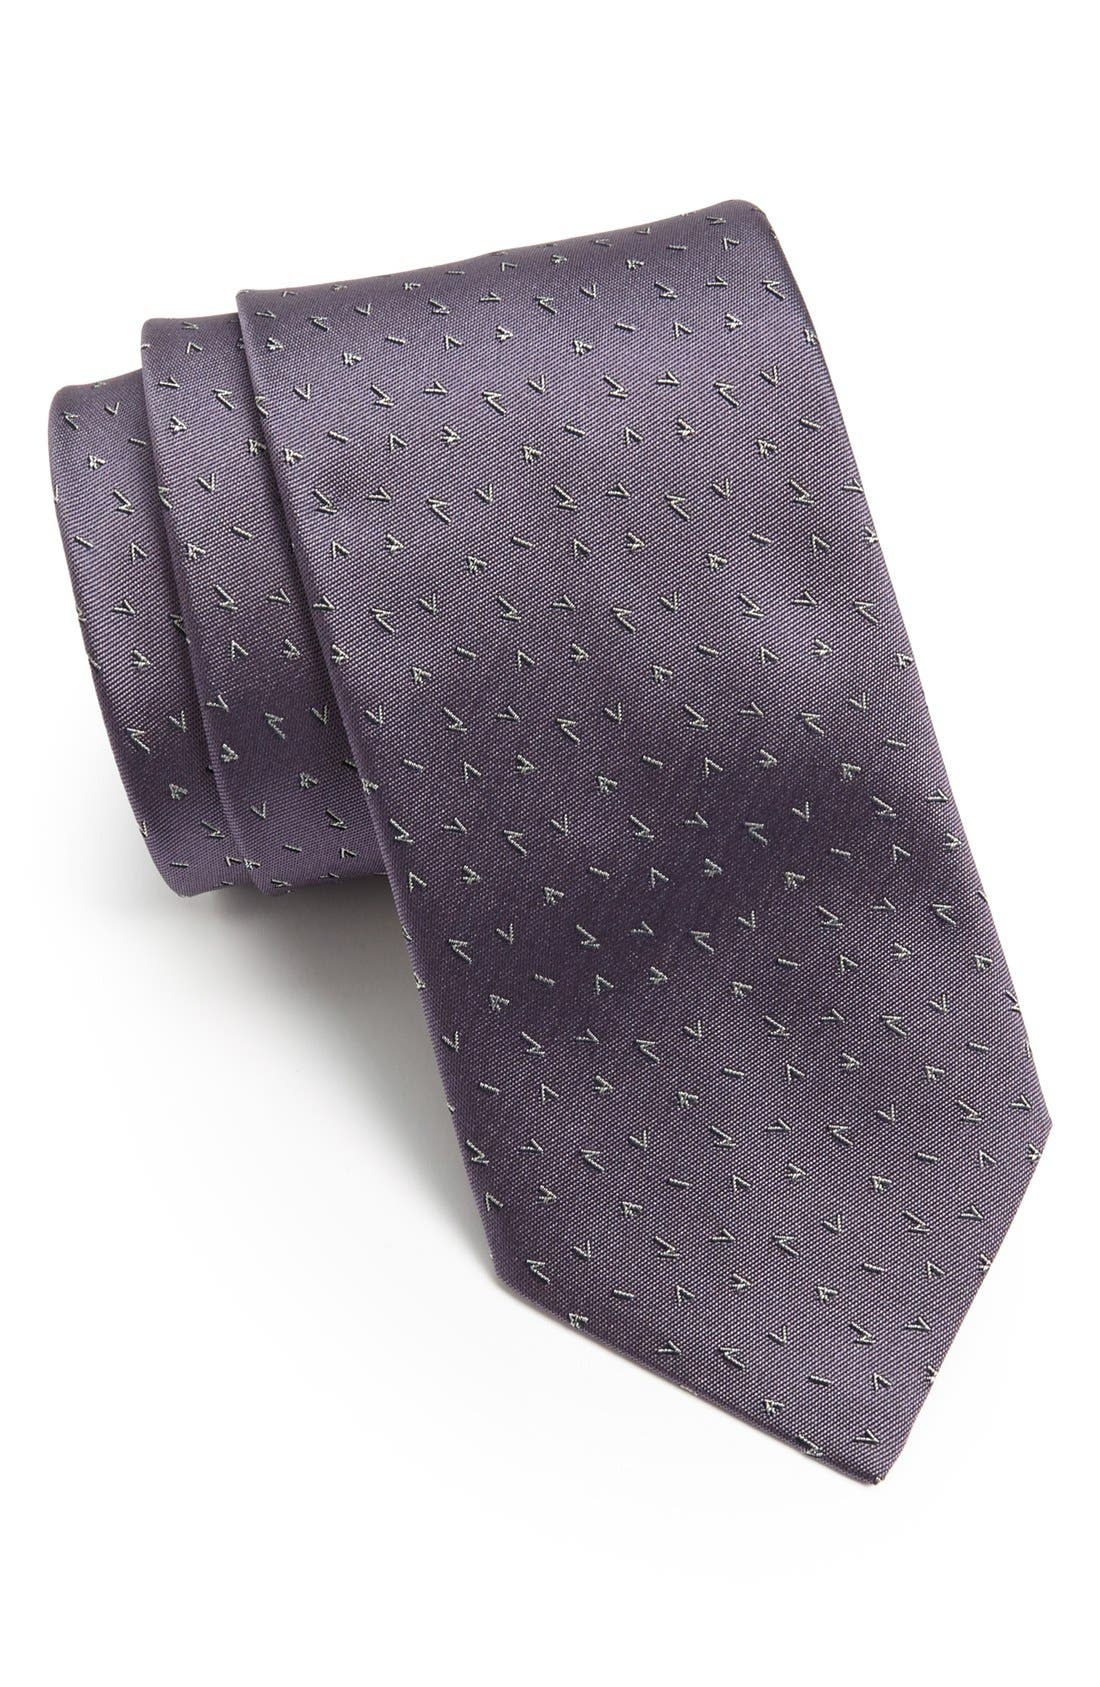 Alternate Image 1 Selected - Lanvin Woven Silk Tie